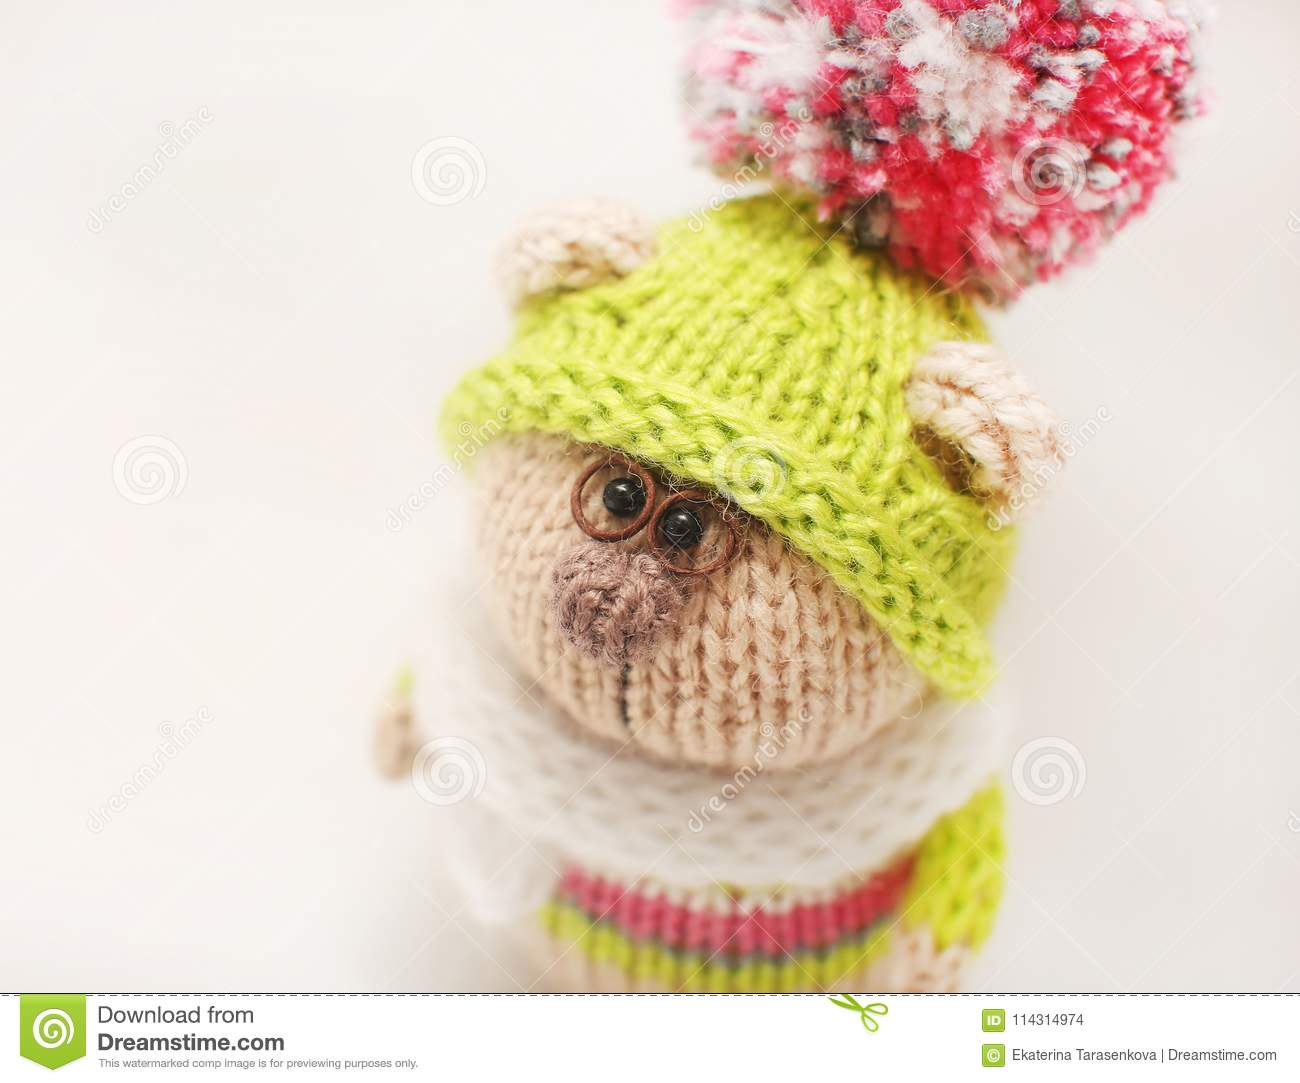 22e24846807 Handmade knitted toy. Knitted bear close-up in color sweater and green cap  with